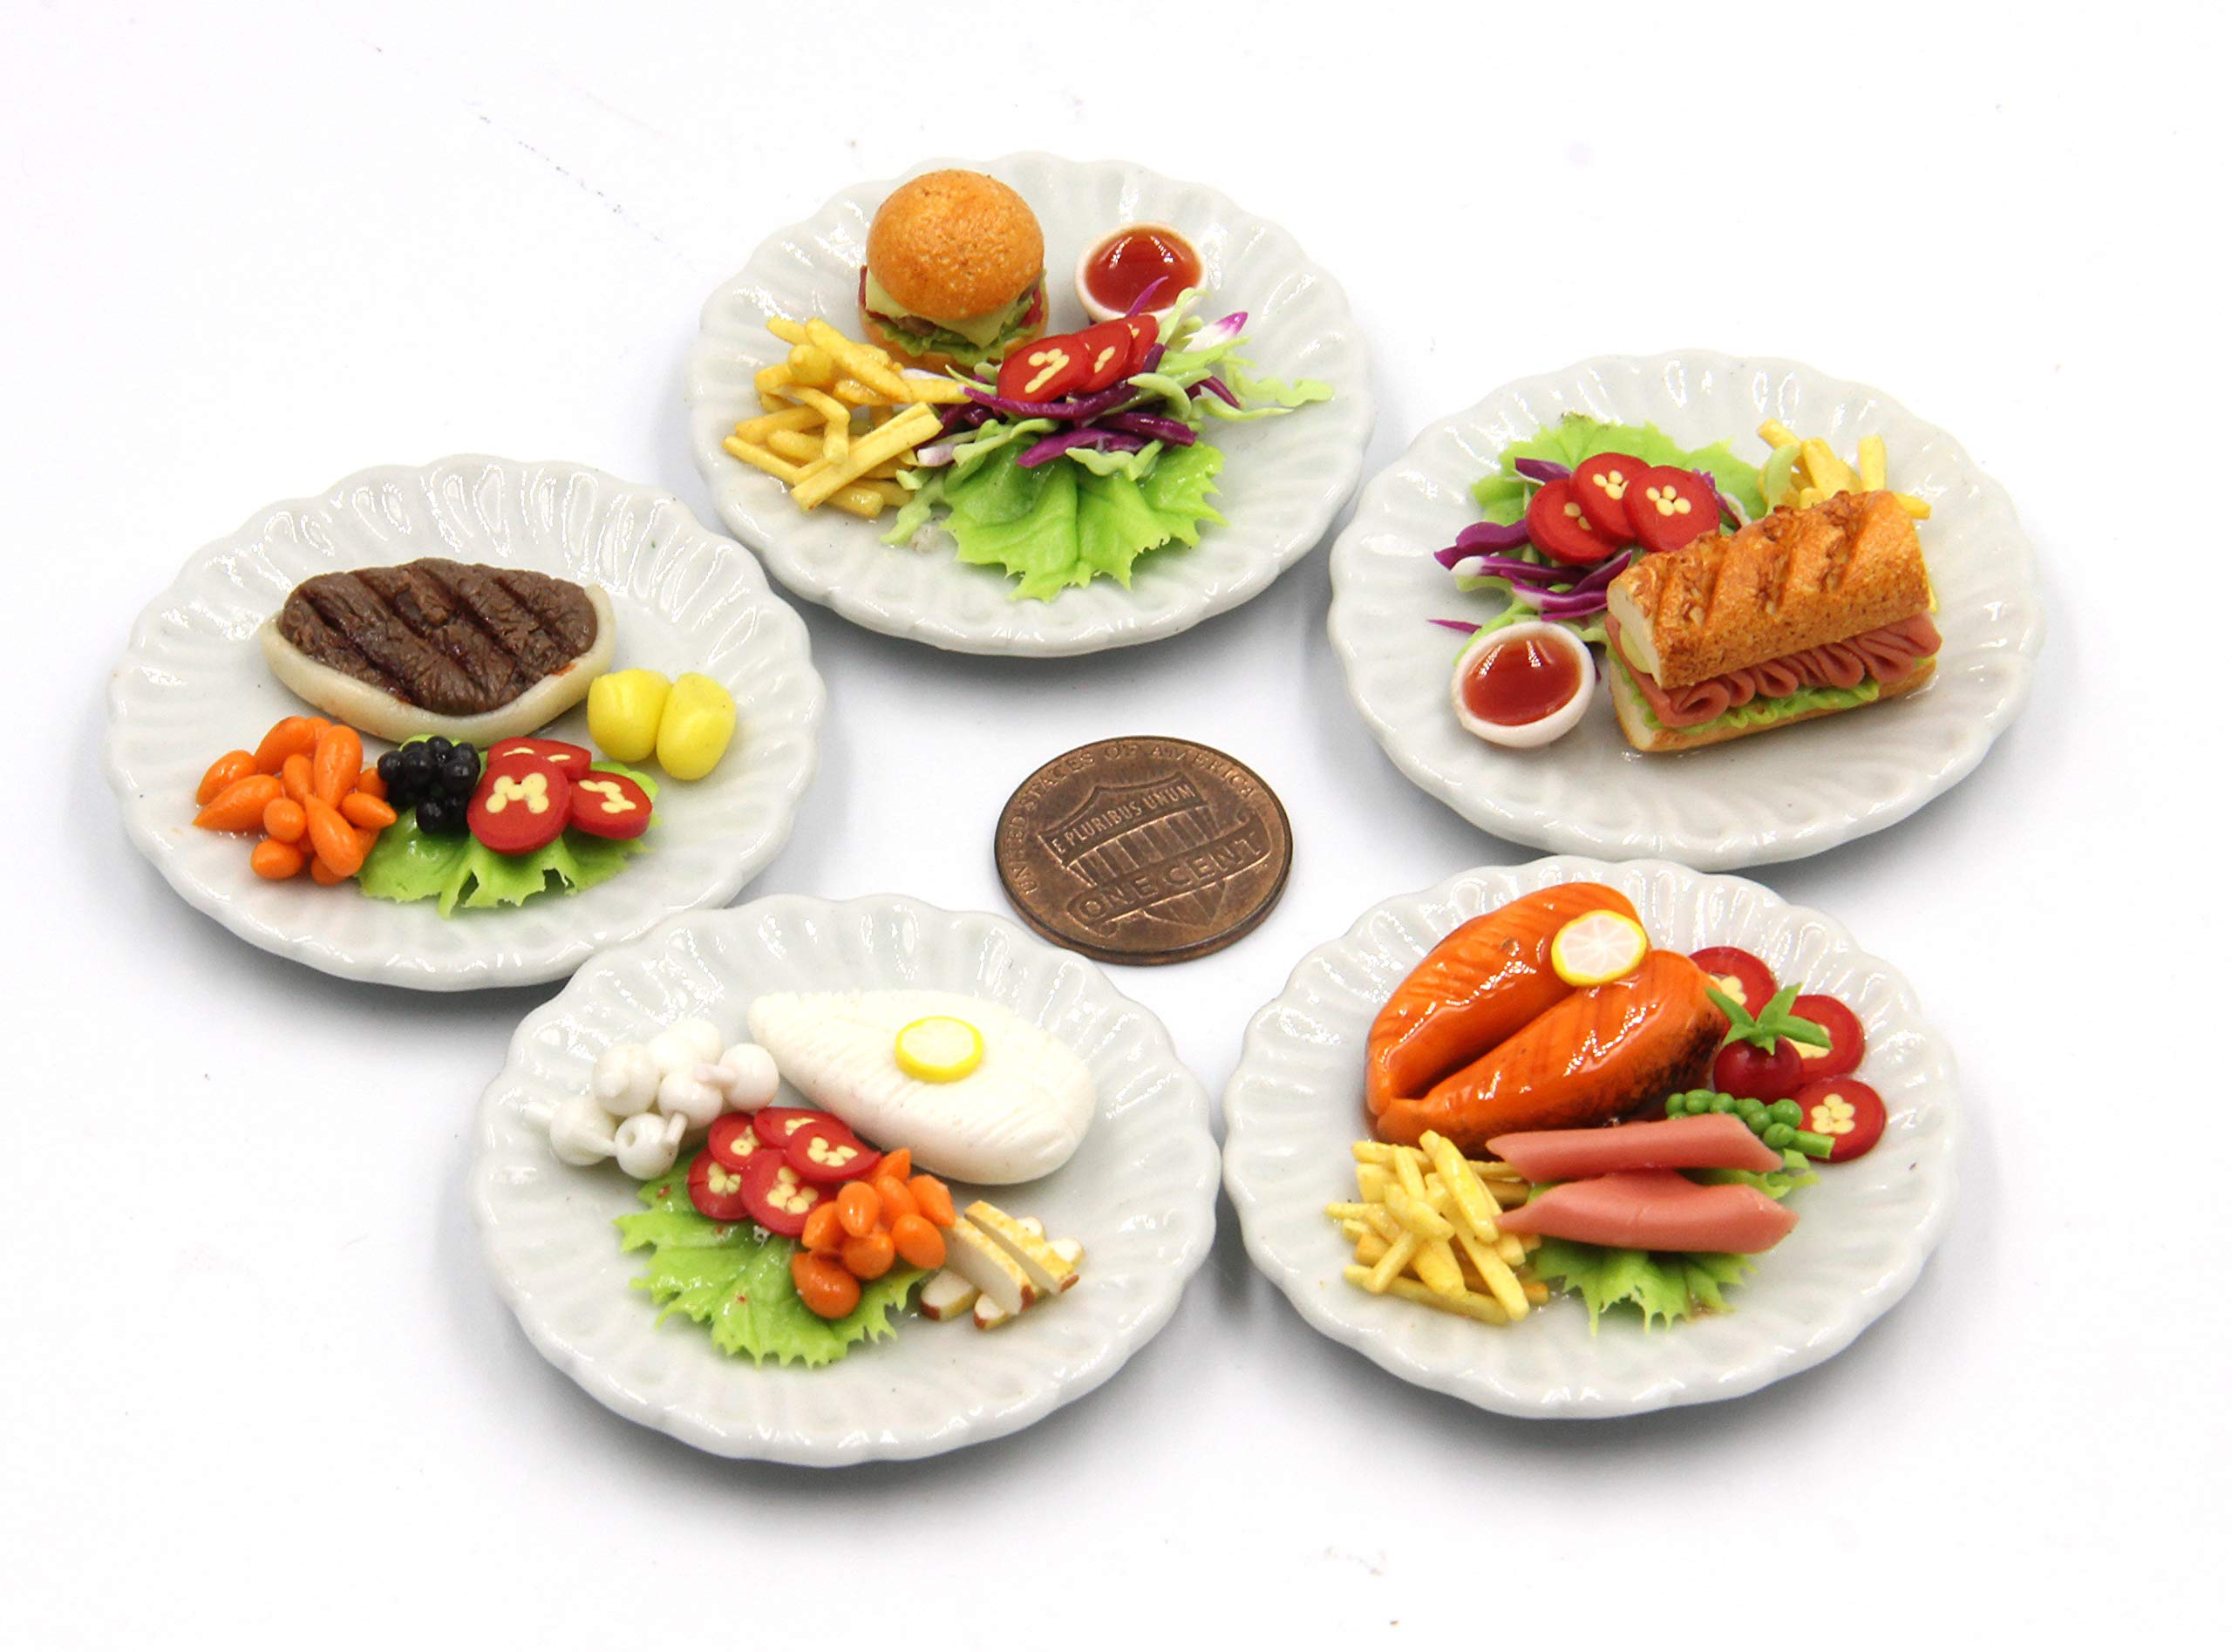 Magma Brick Lovely Mixed 5 Assorted Dollhouse Miniature Food,Tiny Food for Collectibles, Berger Breakfast and Beefsteak SalmonSteak